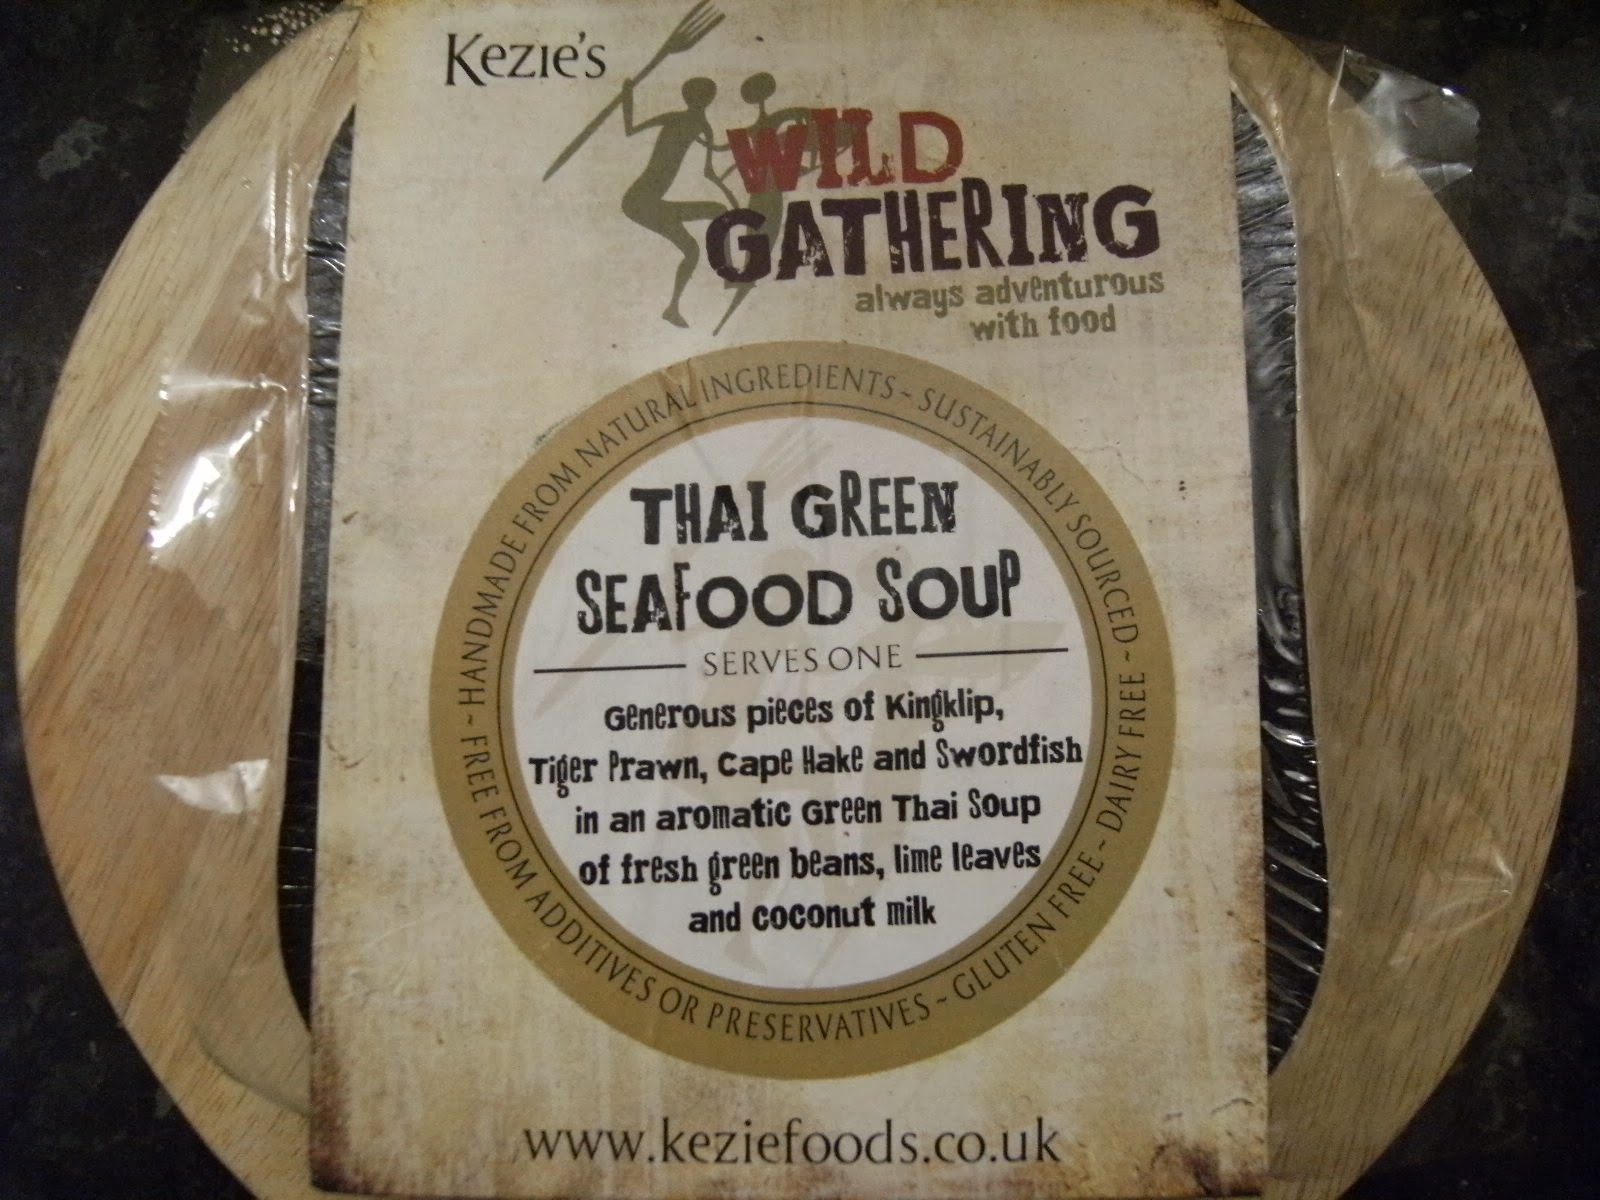 Kezie Foods - Thai Green Seafood Soup [Review by @CaptainKindling]